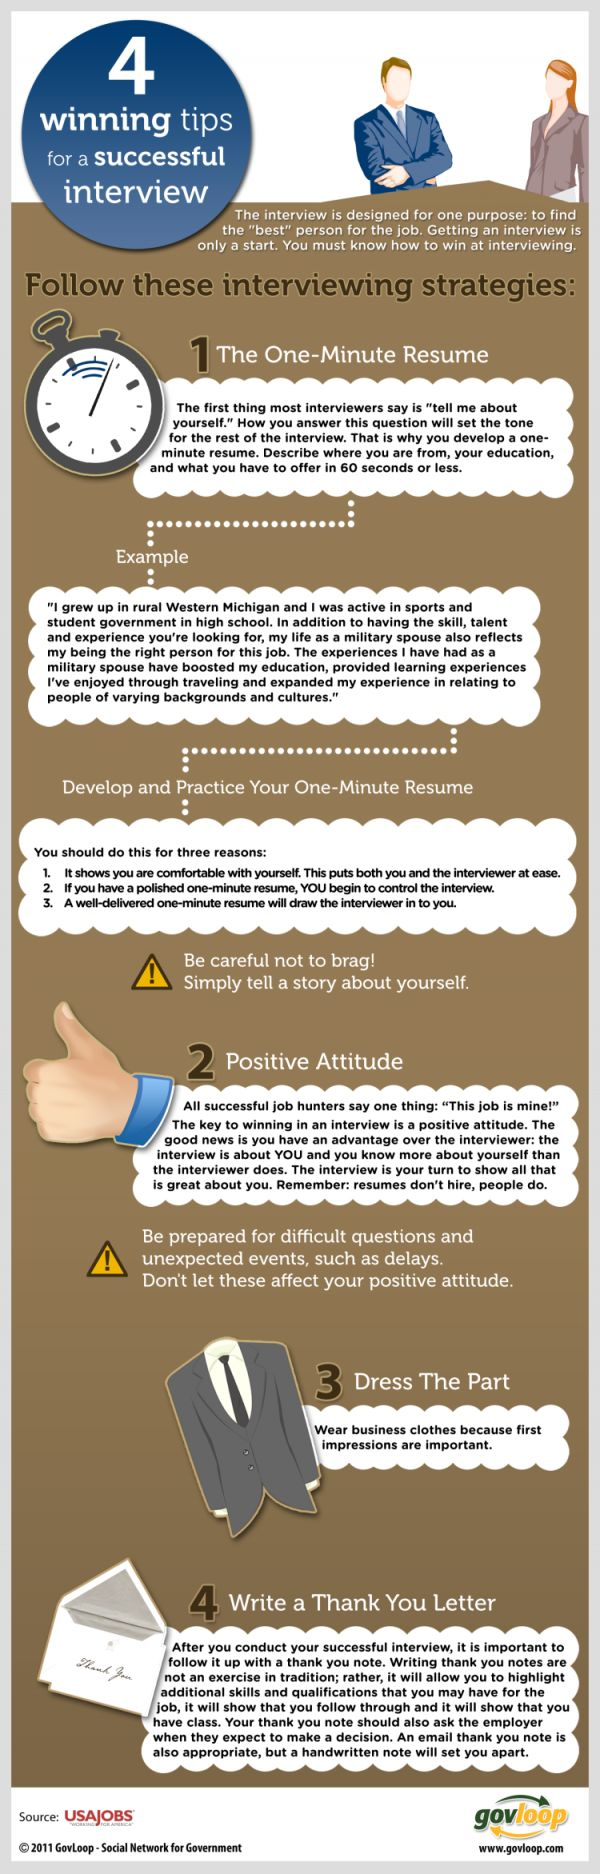 4 winning tips for a succesful #interview | #infographic #jobsearch. ¡I Love You, Infographic!